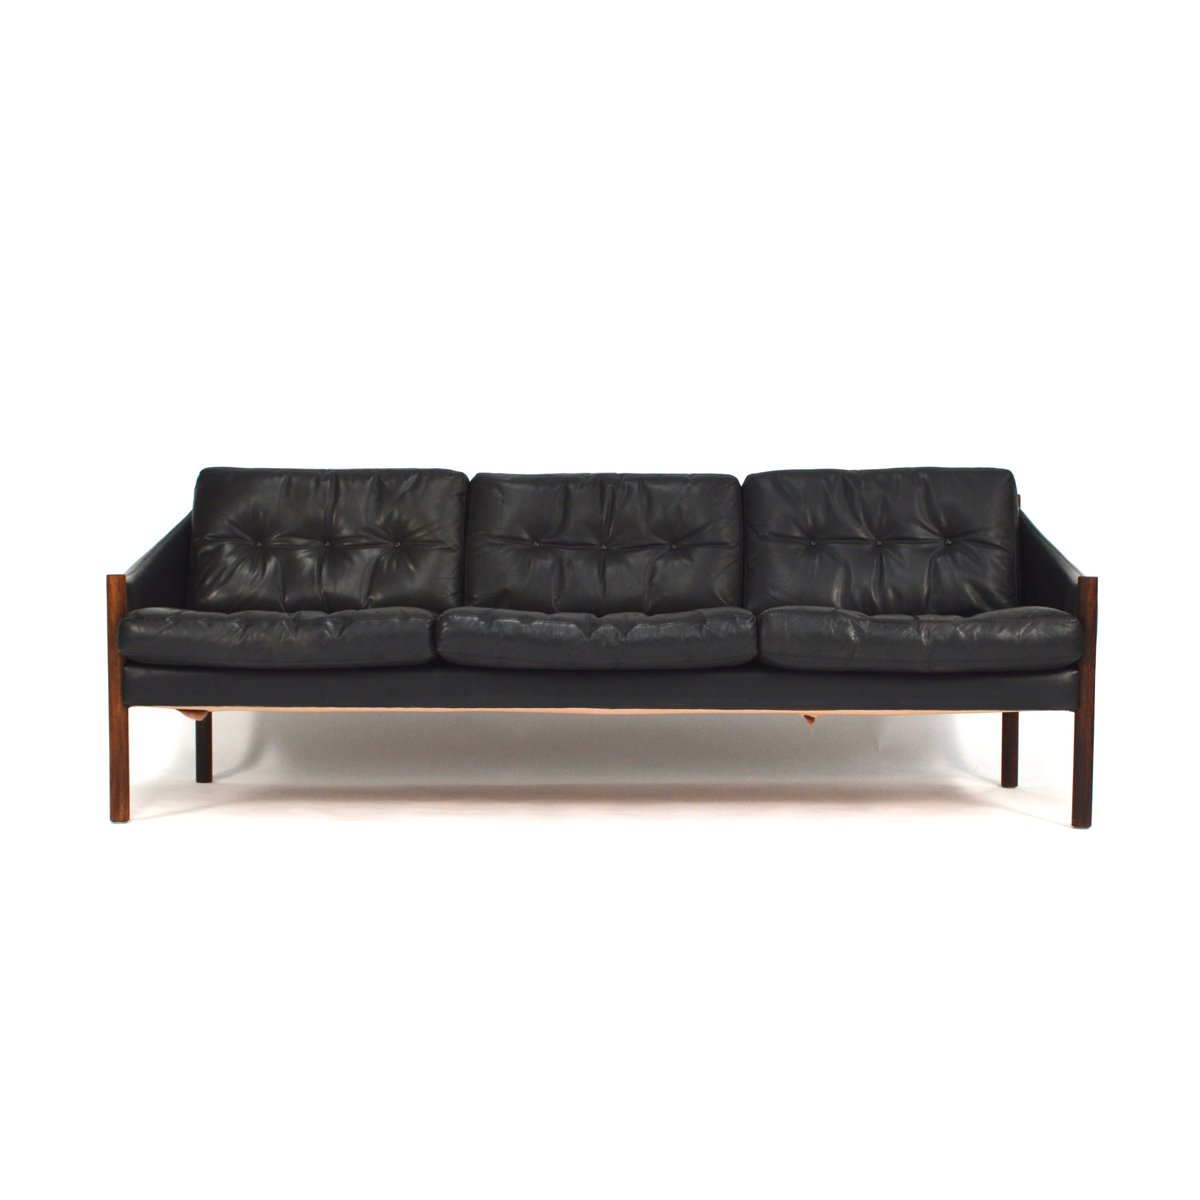 Mid century black leather sofa for sale at pamono for Black leather sofa